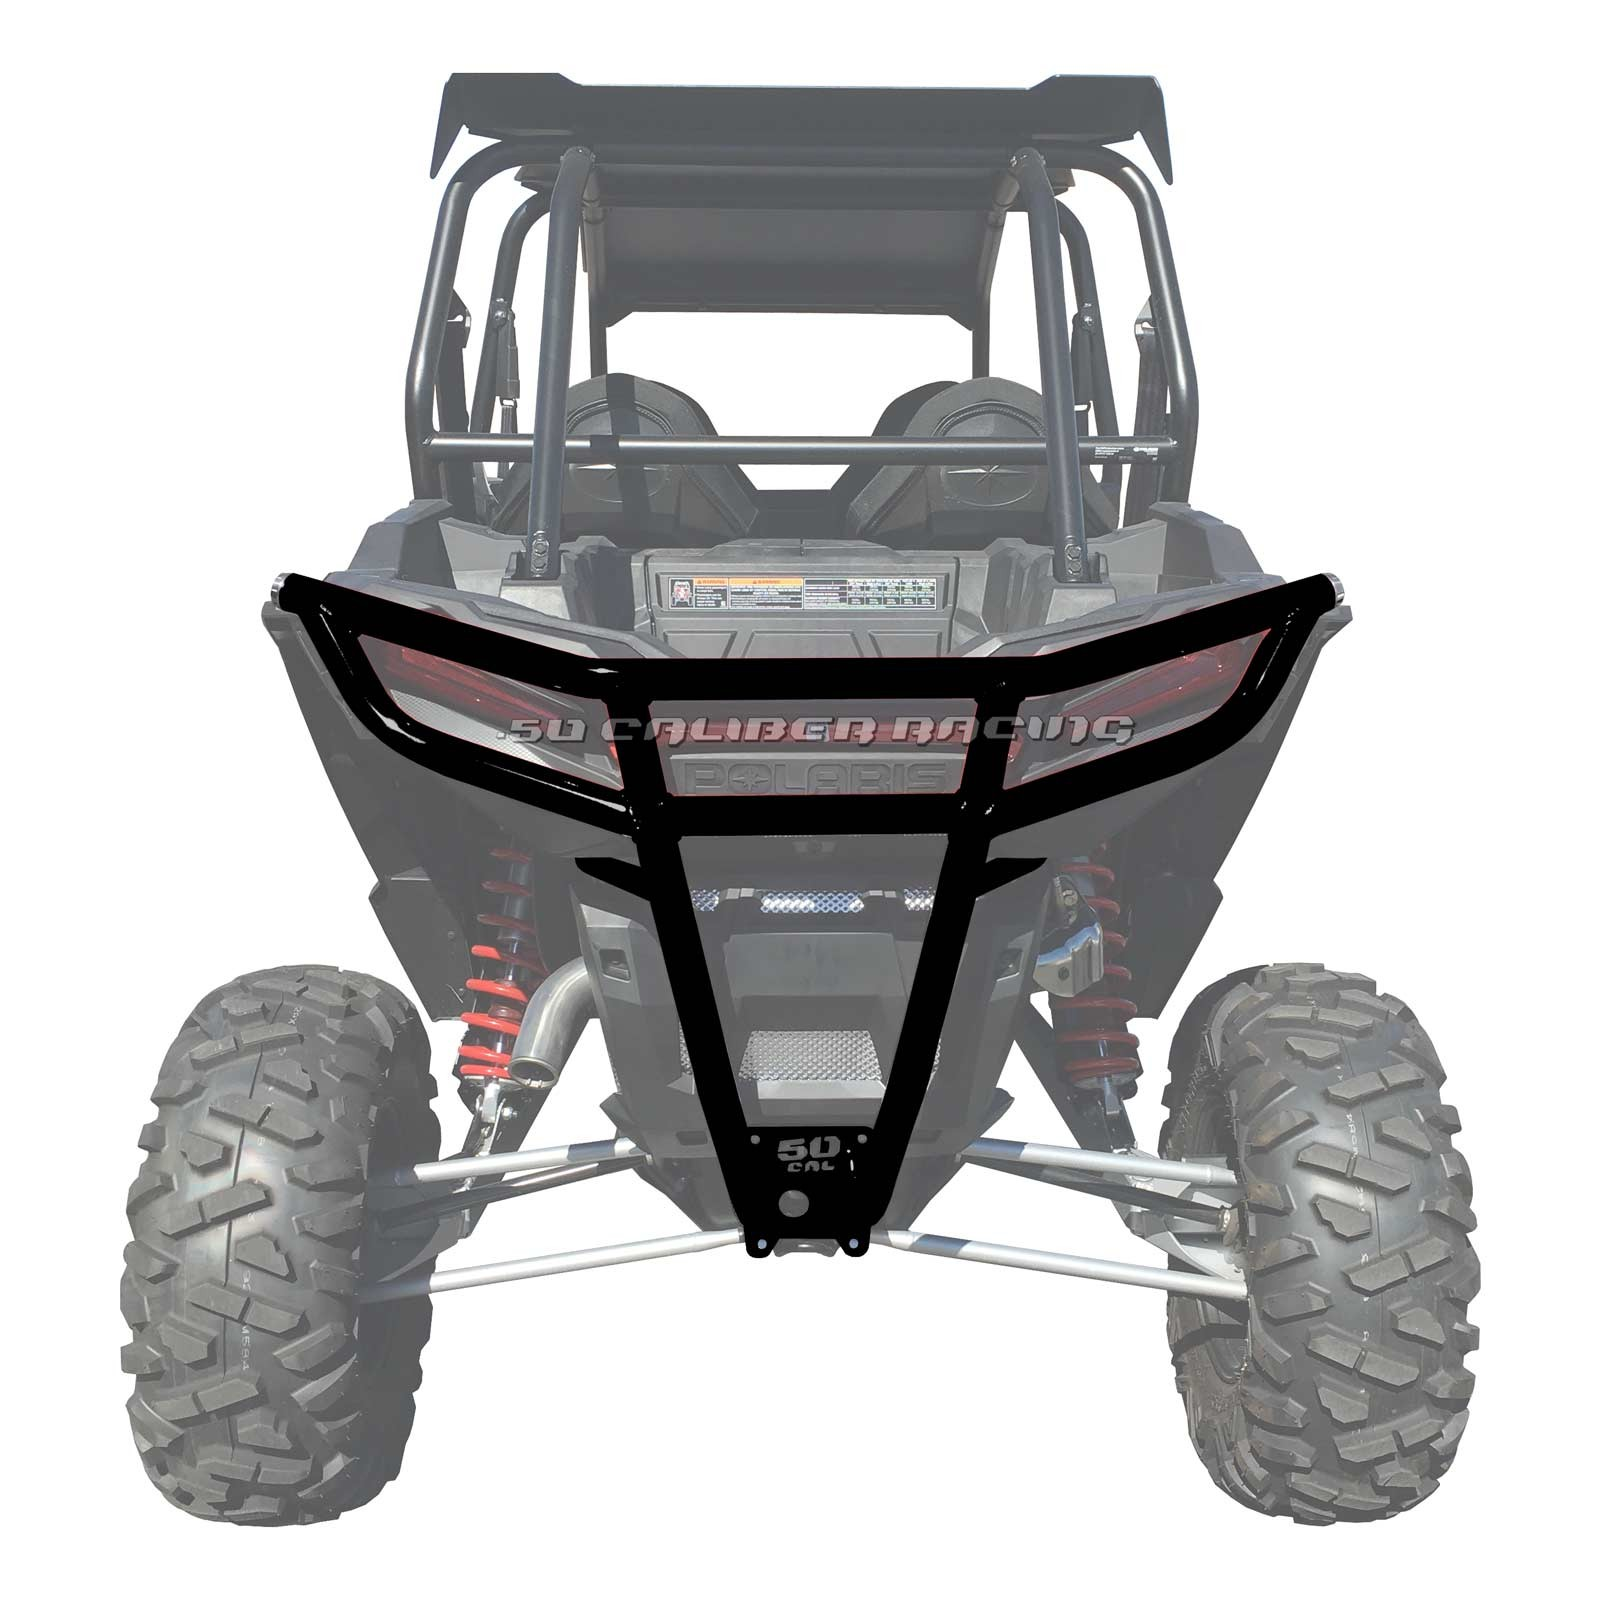 hight resolution of details about 50 caliber racing 2019 polaris rzr xp1000 rear bumper black